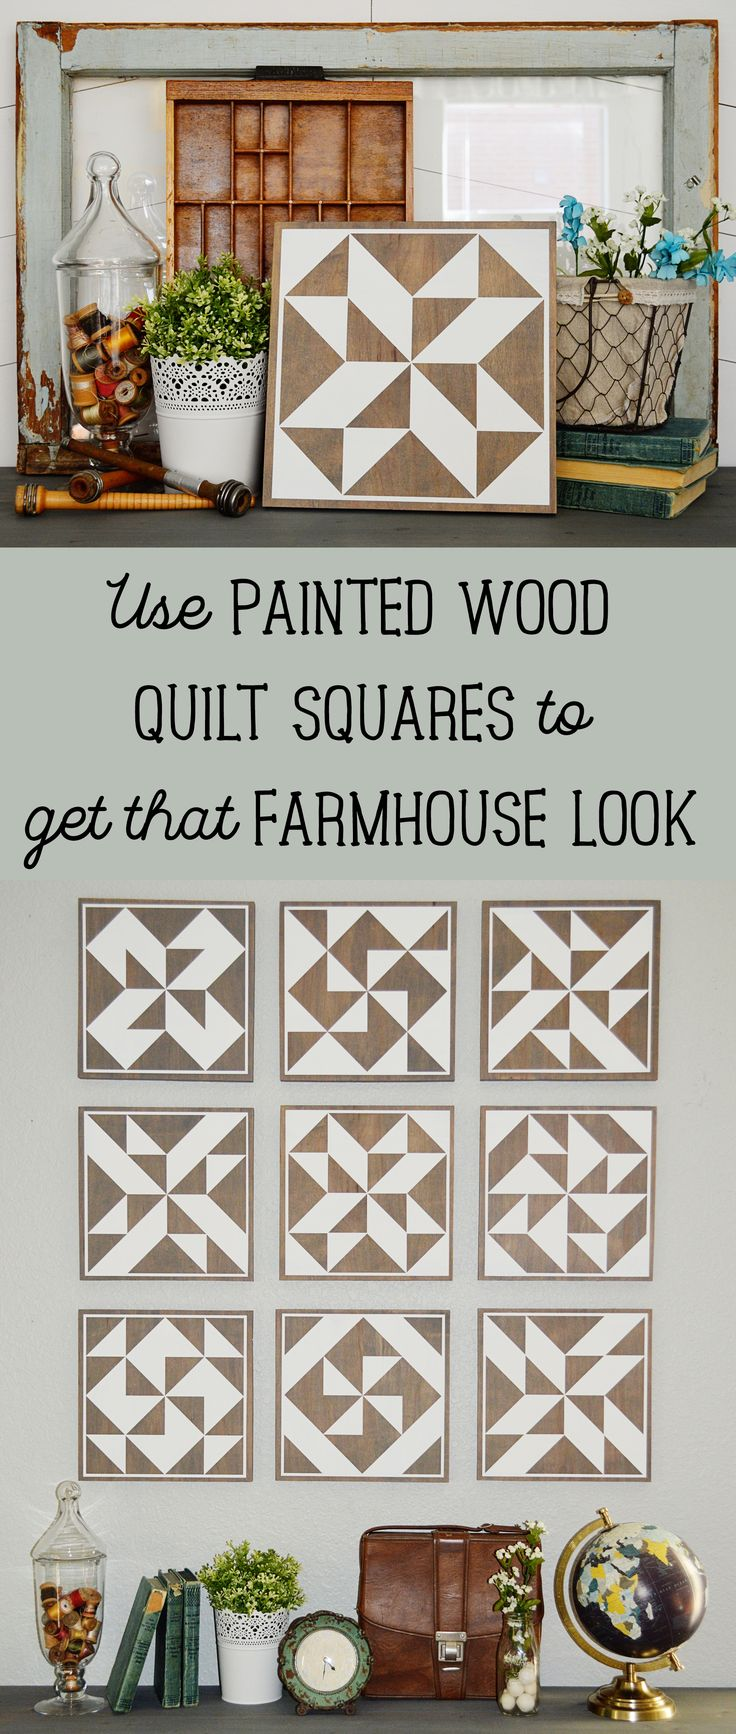 Achieve the cottage / farmhouse / rustic style everyone loves right now by using painted wood quilt squares signs to layer into your decor or pair together as a mural on your wall. #farmhouse #cottage #rustic #quiltsquare #grannysquare #quiltblock #woodsigns #paintedwoodsign #paintedsign